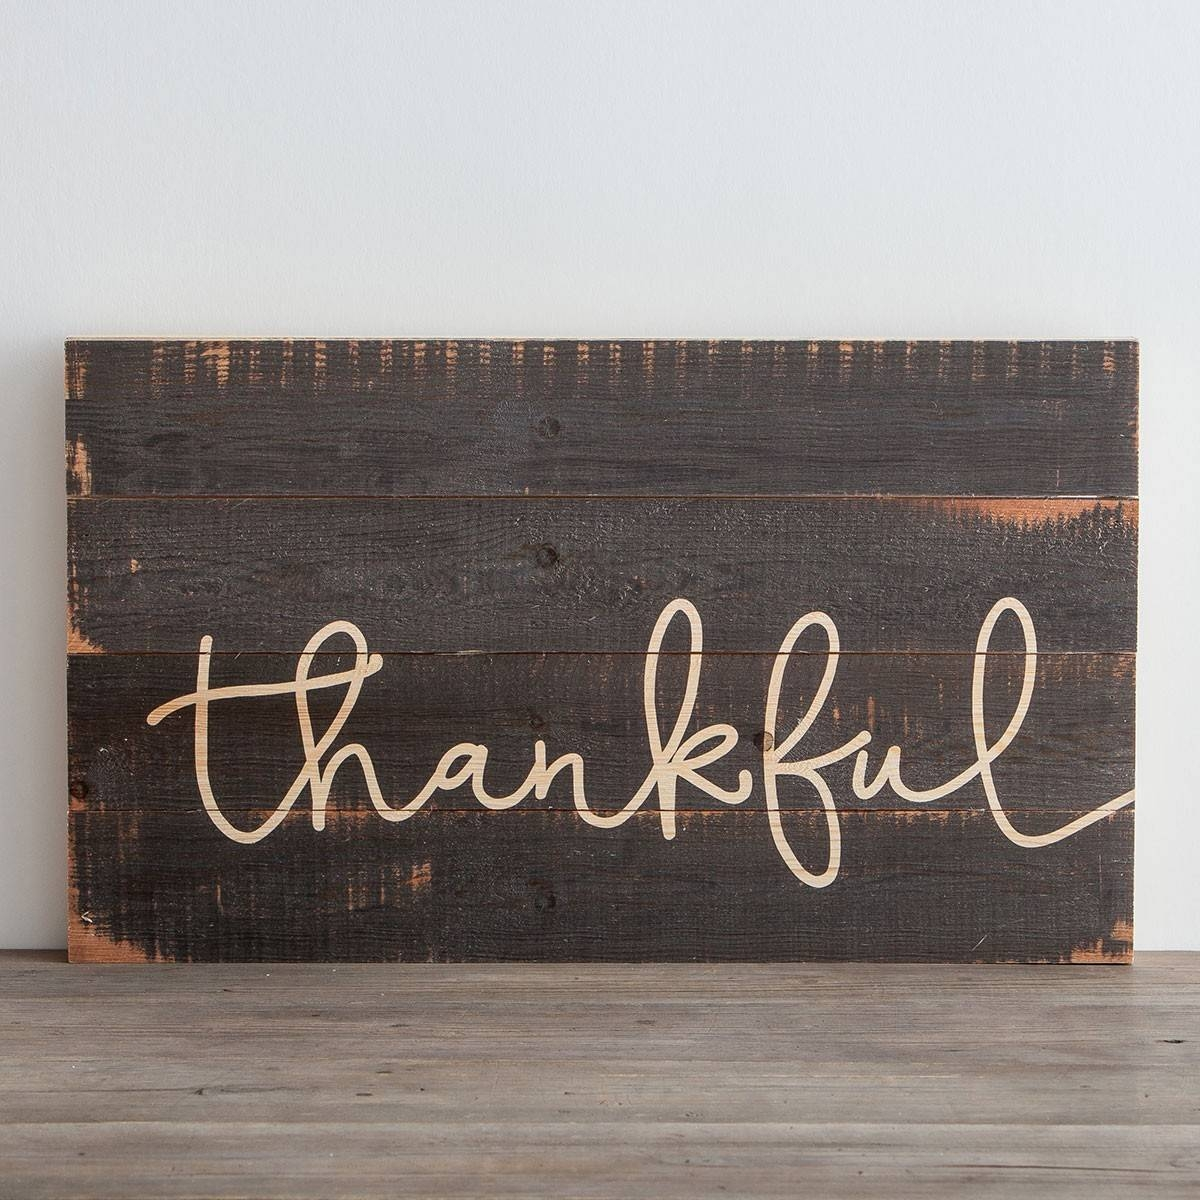 Thankful – Wooden Wall Art | Dayspring With Regard To Most Current Natural Wood Wall Art (View 18 of 20)